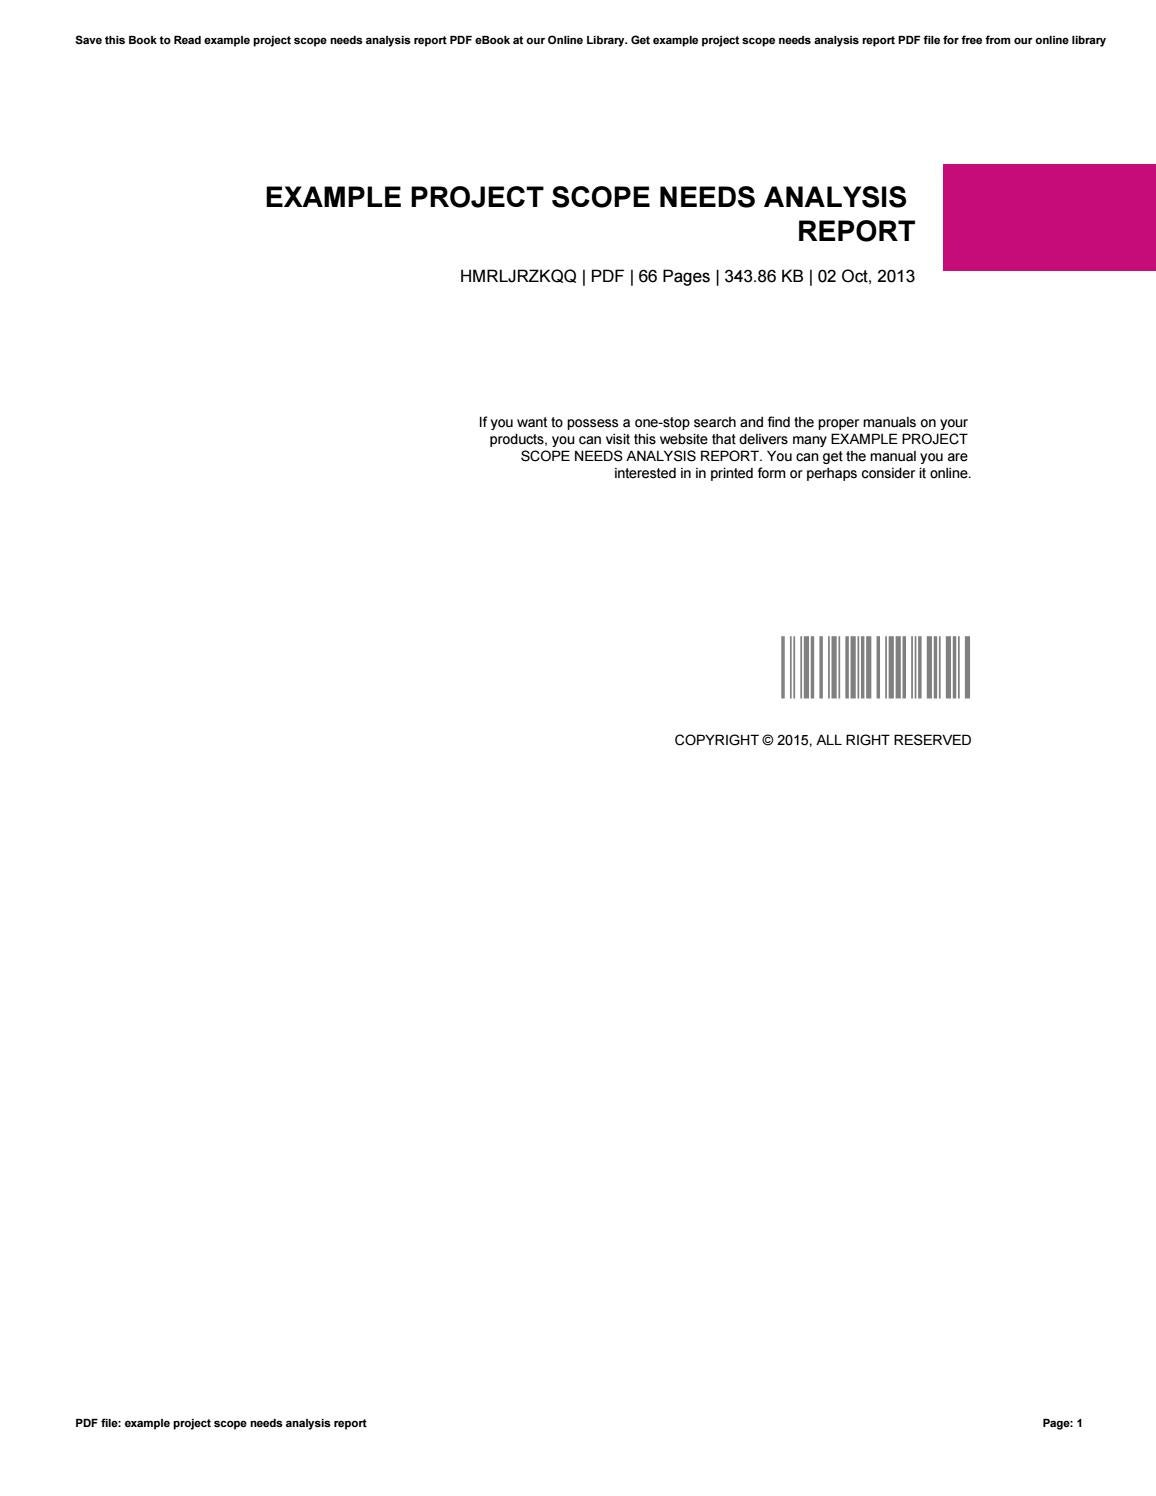 Example Project Scope Needs Analysis Report By MaryannRoland2802   Issuu